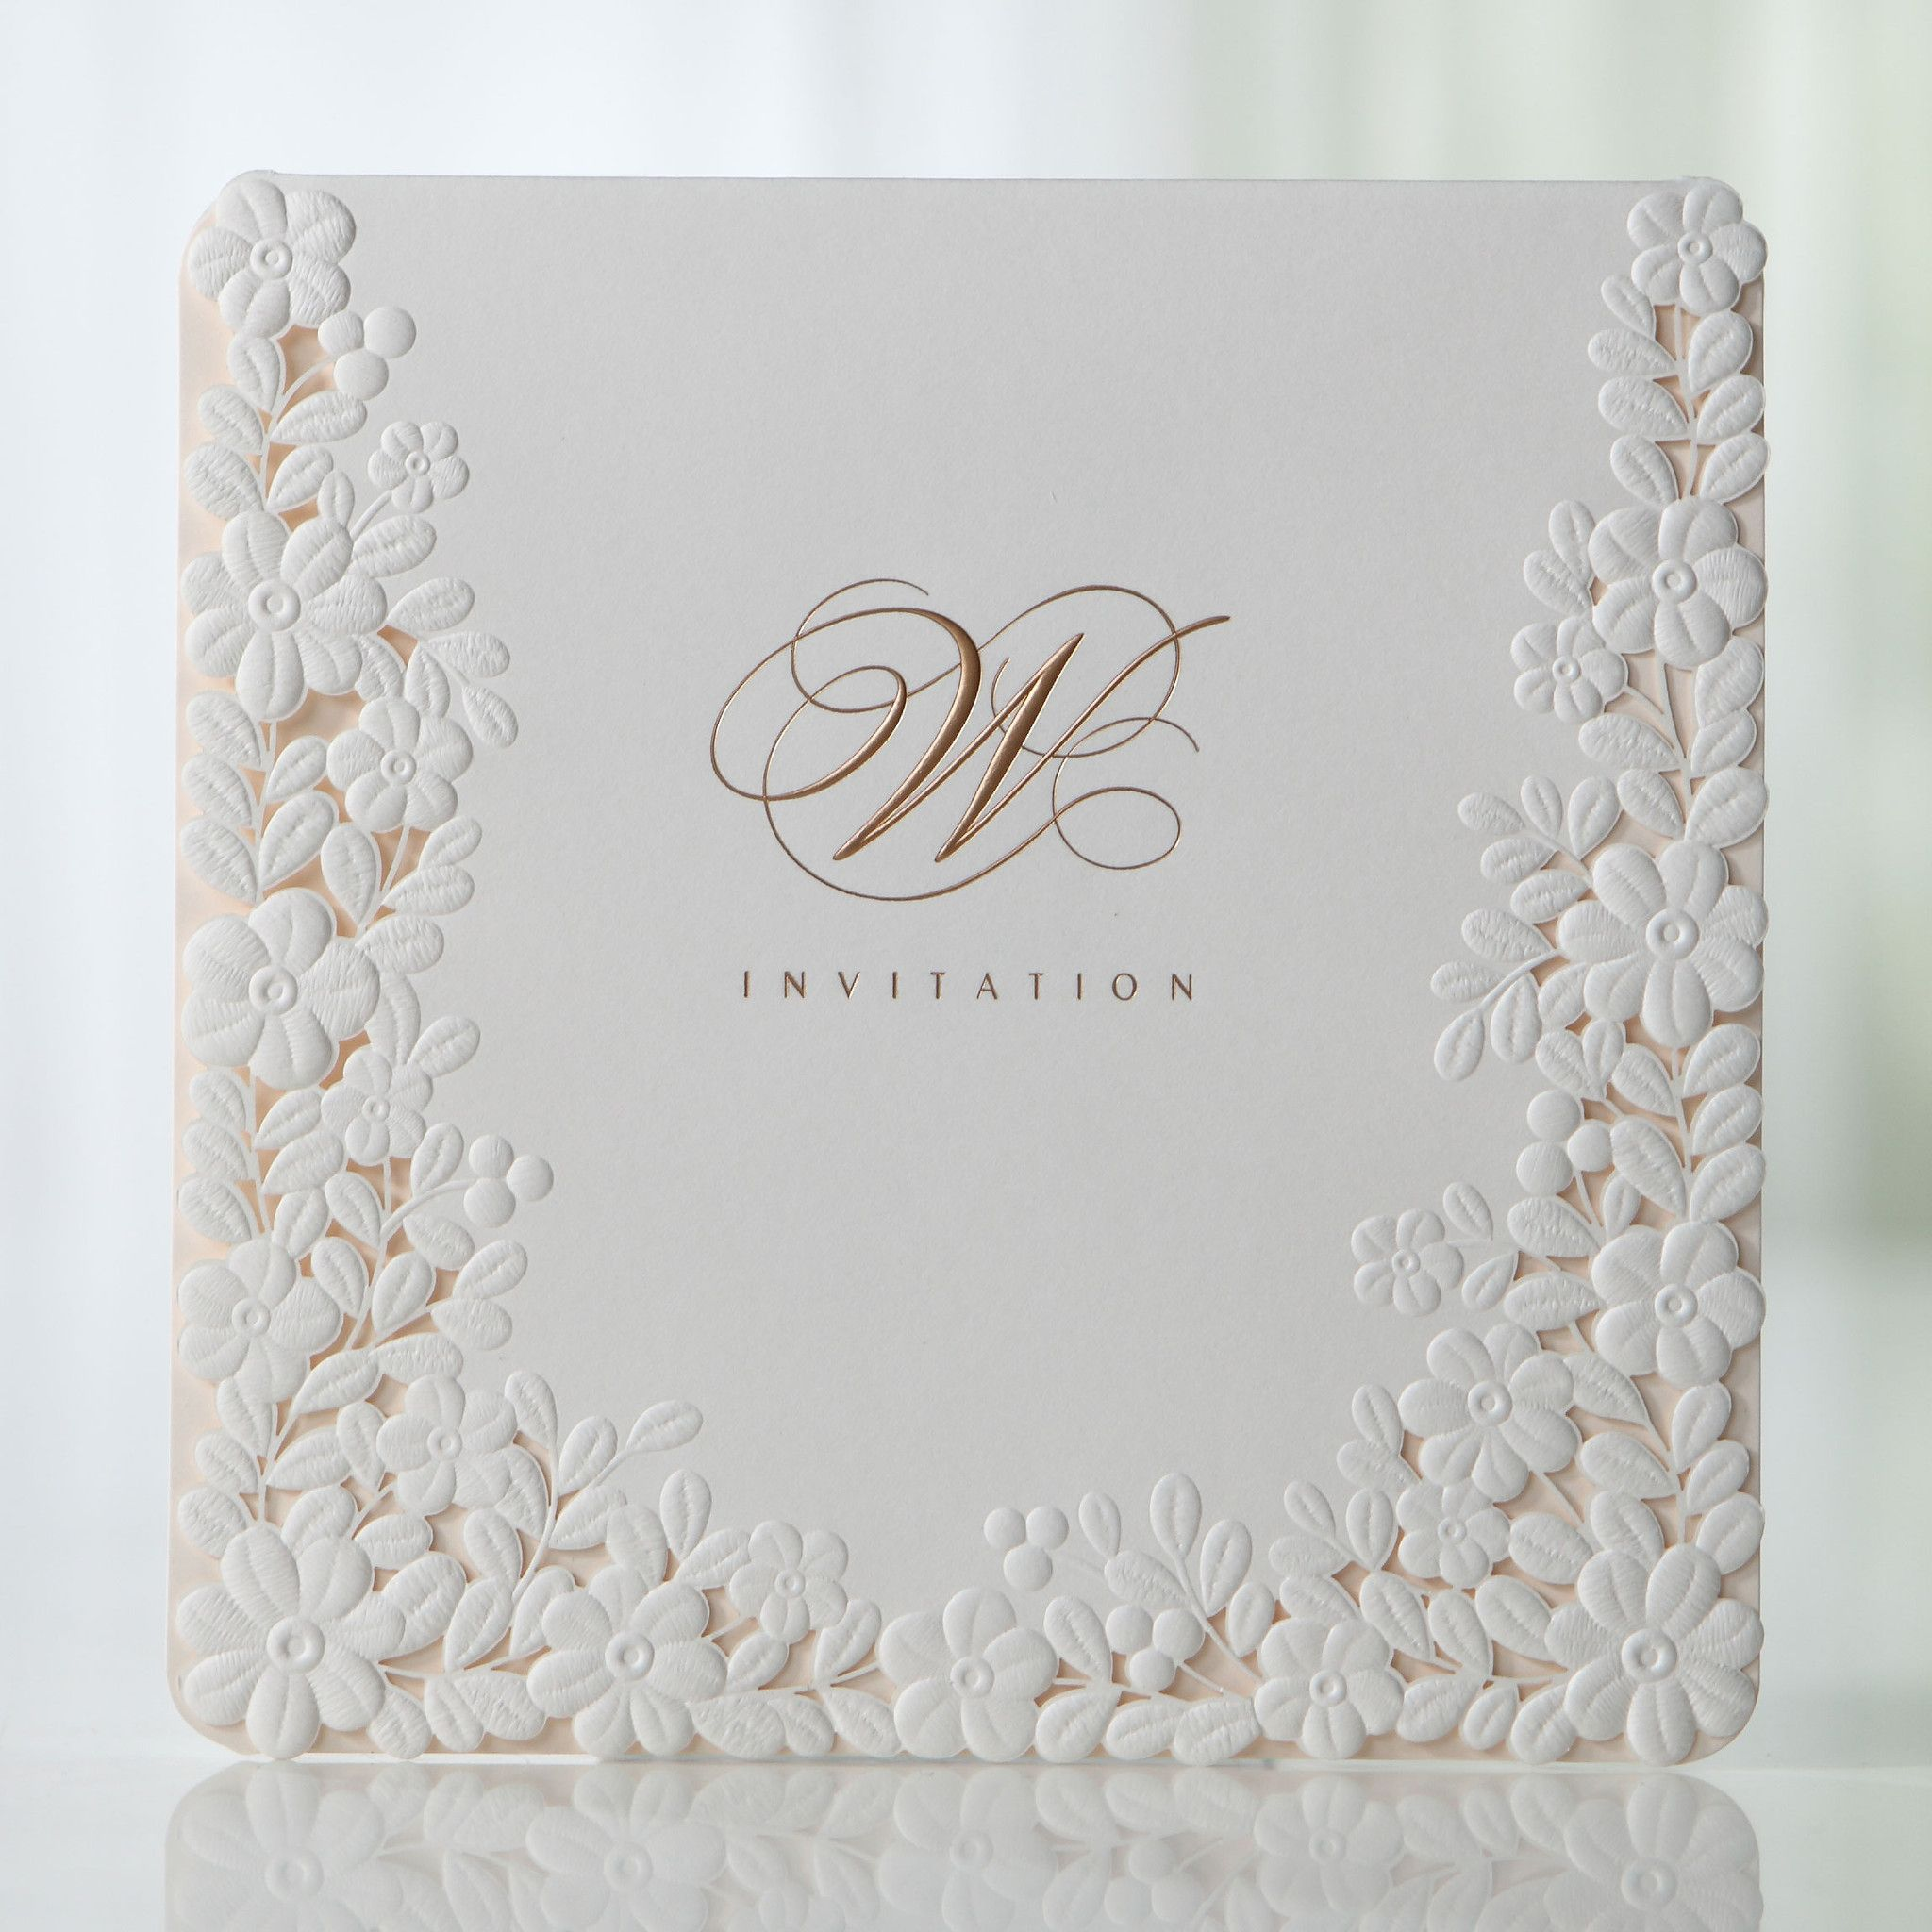 Embossed Wedding Invitations With Beautiful And Best Design Ideas Collection Ivory Pink Laser Cut Fl Bh 3301 Amazing